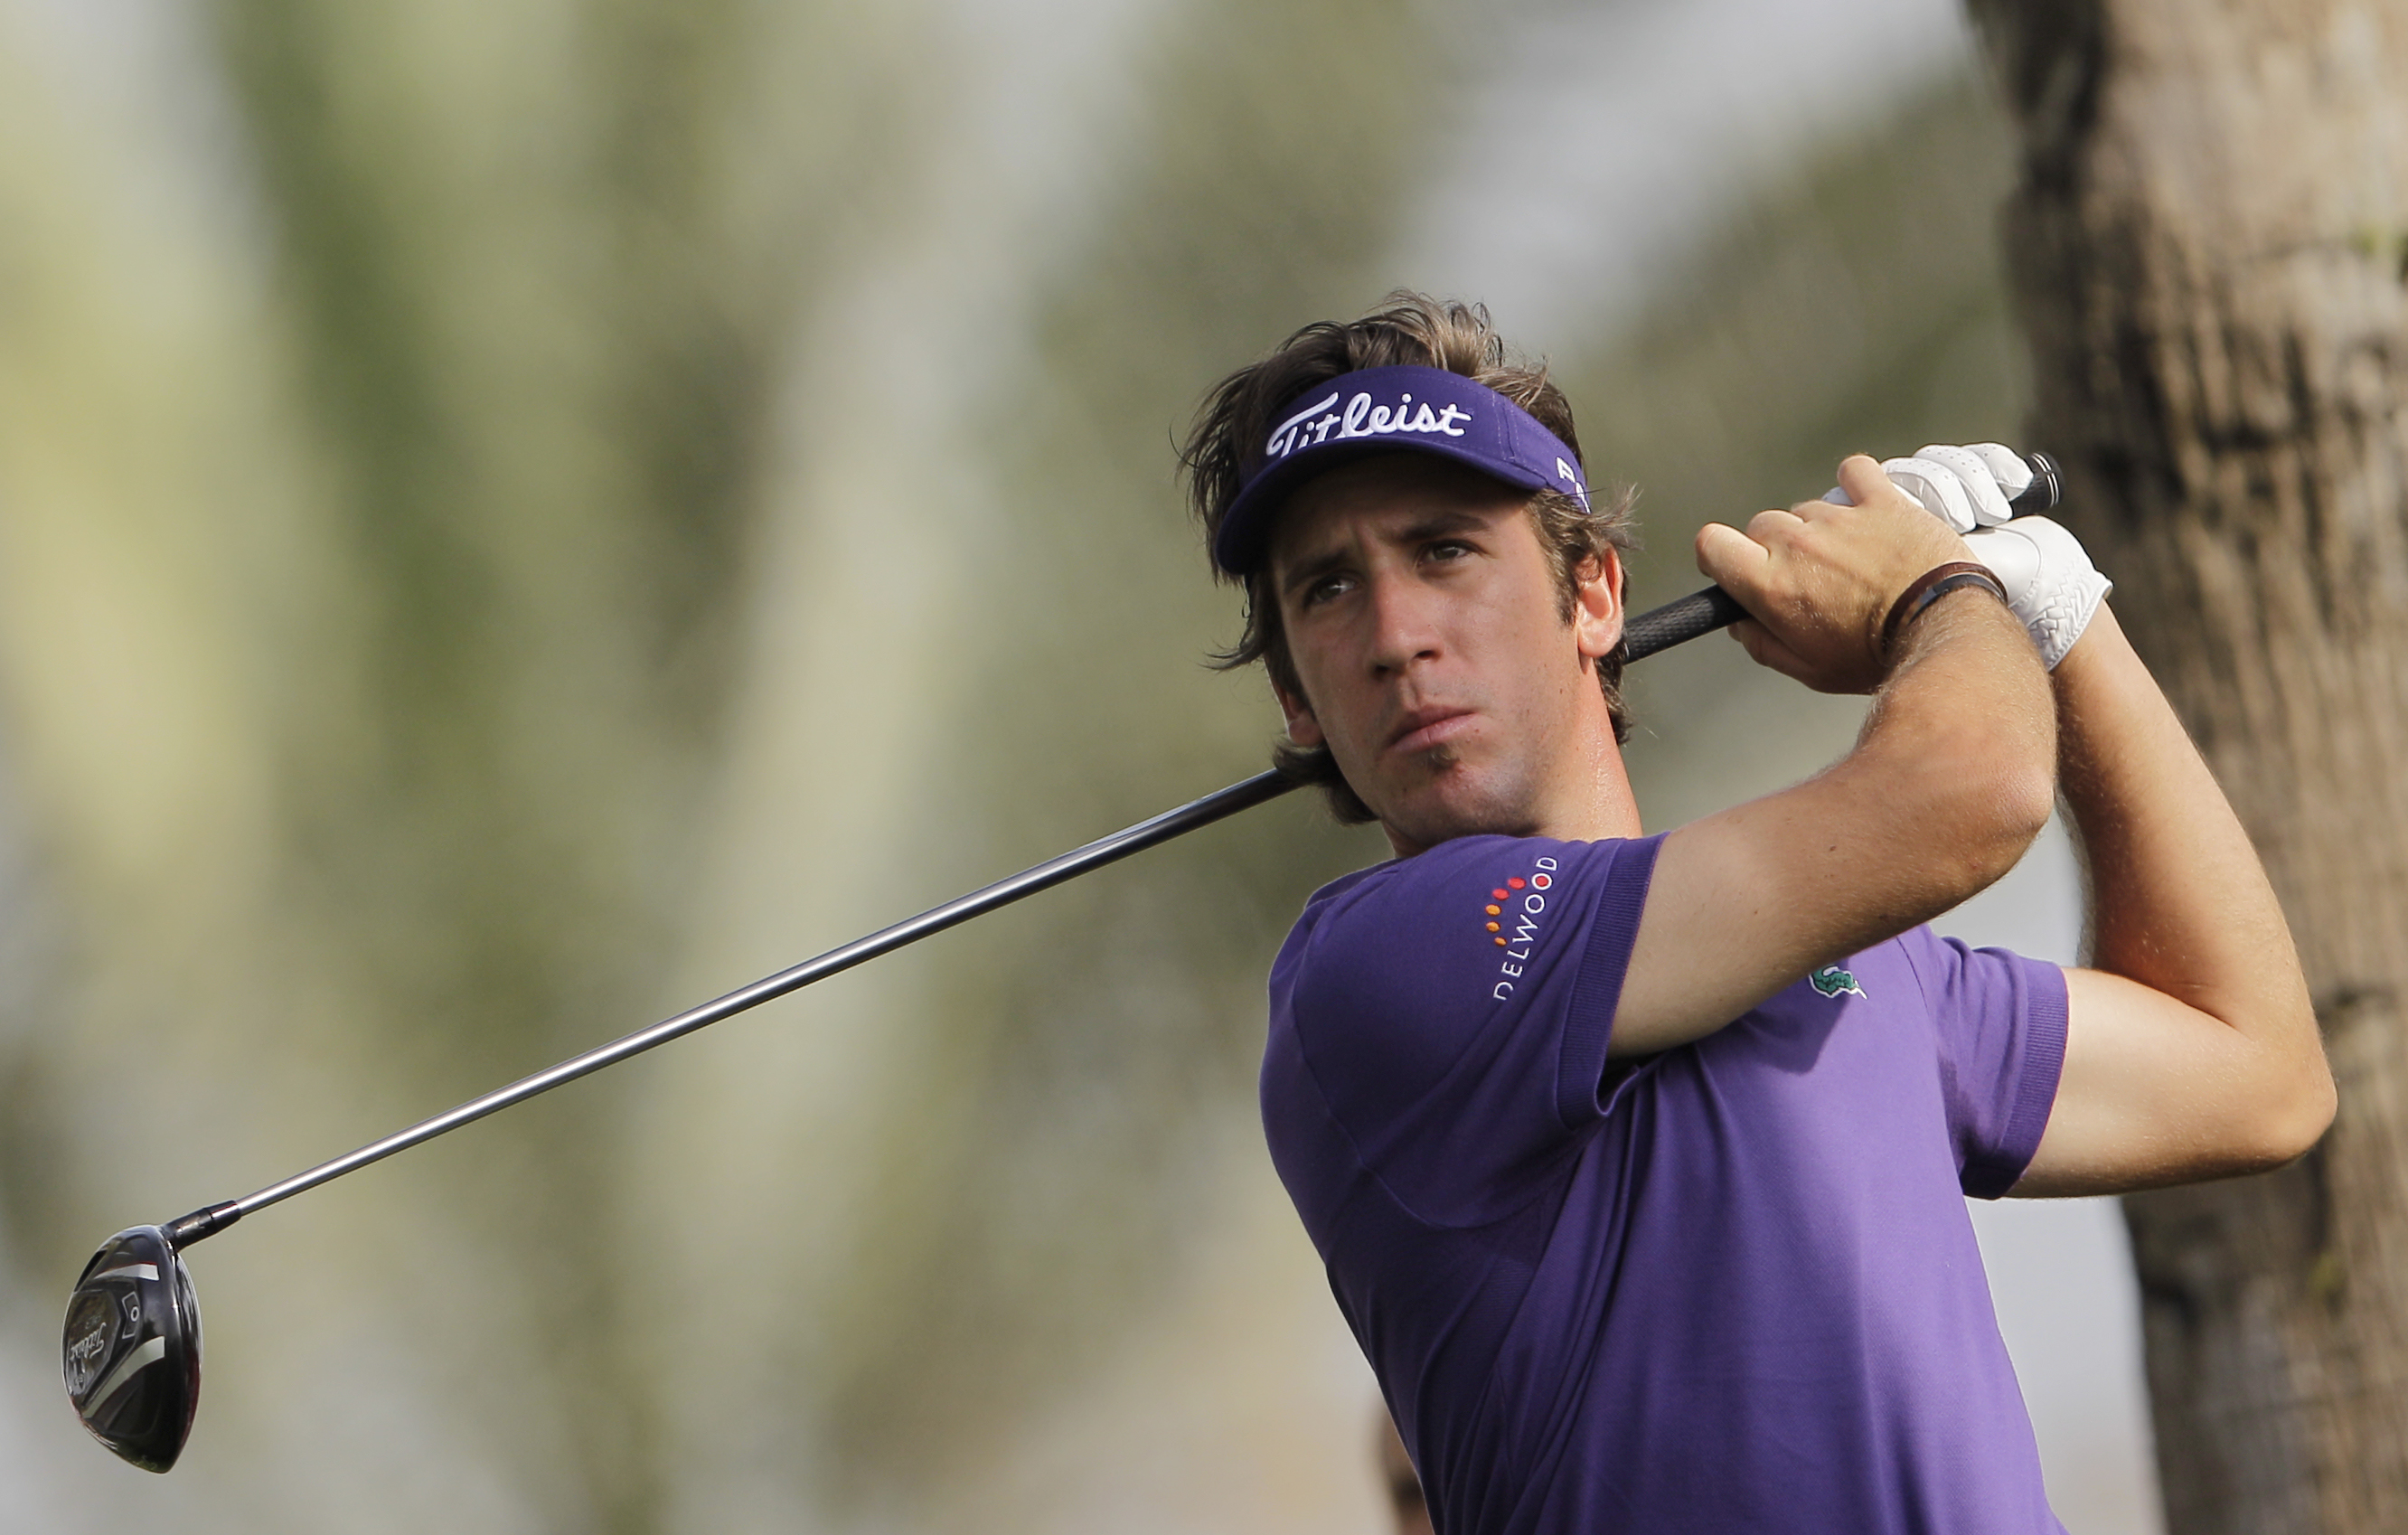 Romain Wattel of France plays a ball on the 8th hole during the second round of the Dubai Desert Classic Golf tournament in Dubai, United Arab Emirates, Friday, Feb. 1, 2013. (AP Photo/Kamran